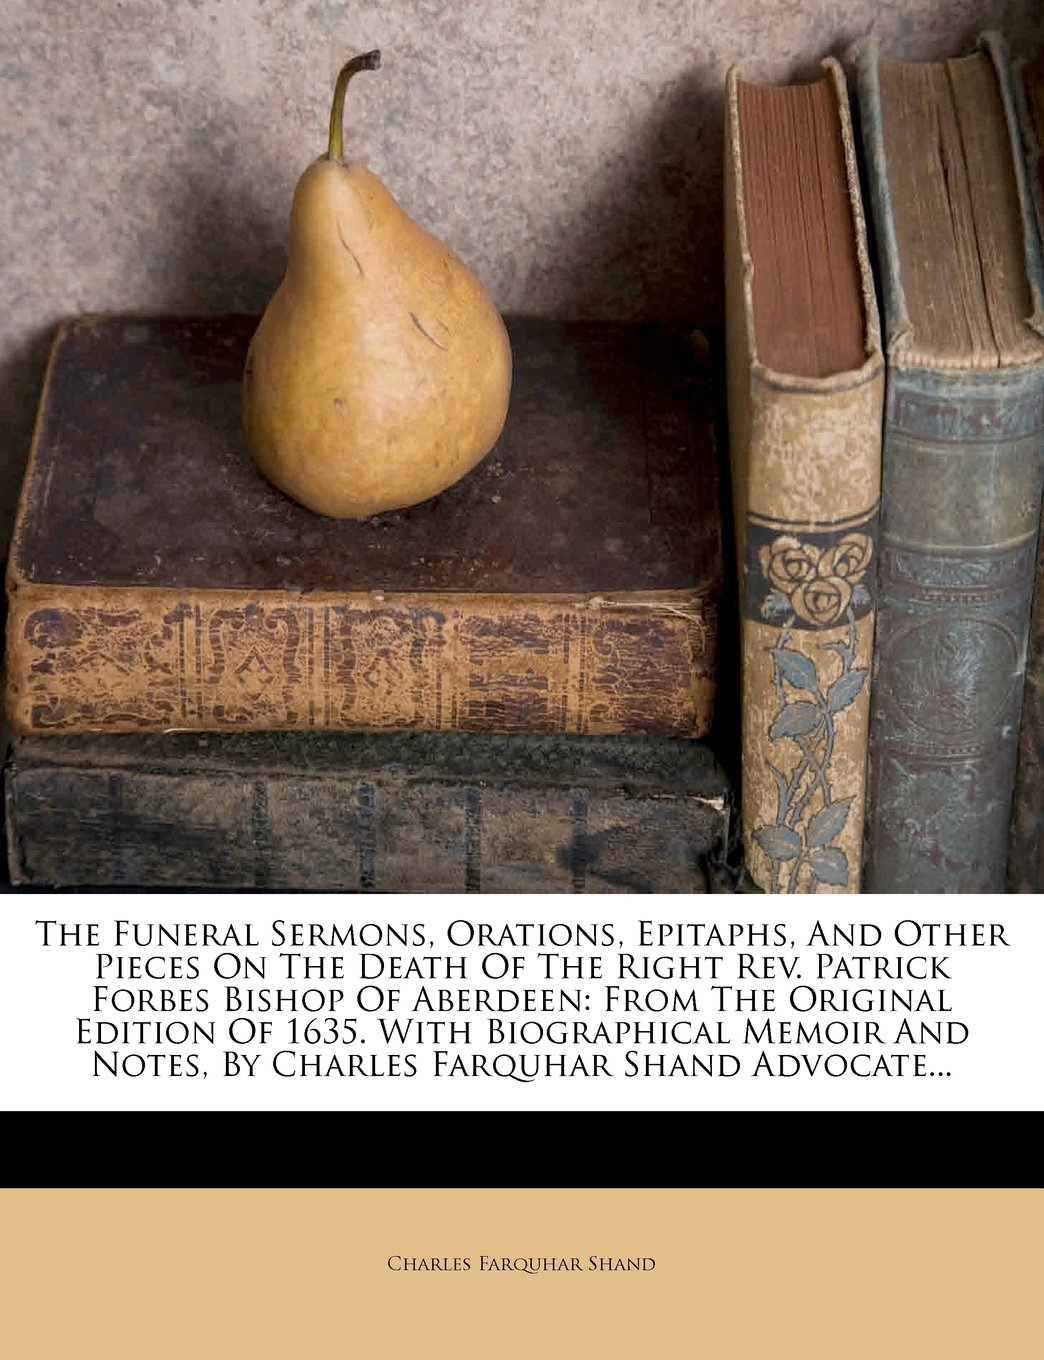 Download The Funeral Sermons, Orations, Epitaphs, And Other Pieces On The Death Of The Right Rev. Patrick Forbes Bishop Of Aberdeen: From The Original Edition ... Notes, By Charles Farquhar Shand Advocate... pdf epub